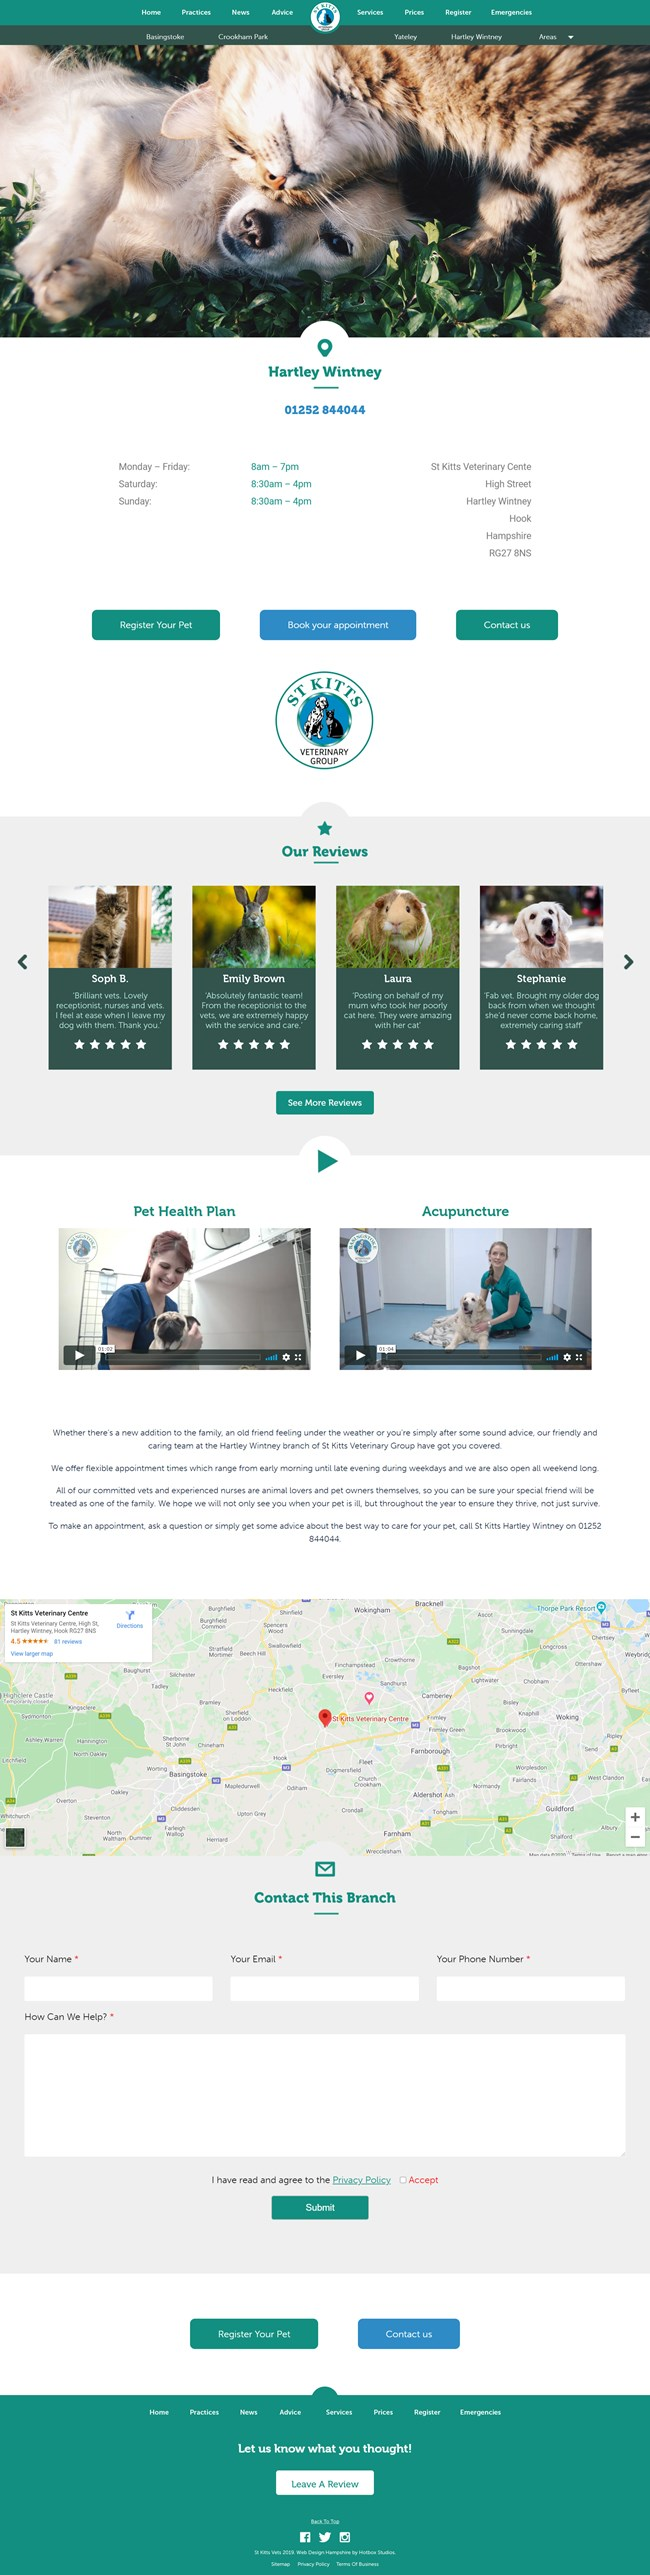 St Kitts Vet Website Design and WordPress Web Development SP007 Practices Hartley Wintney Vets